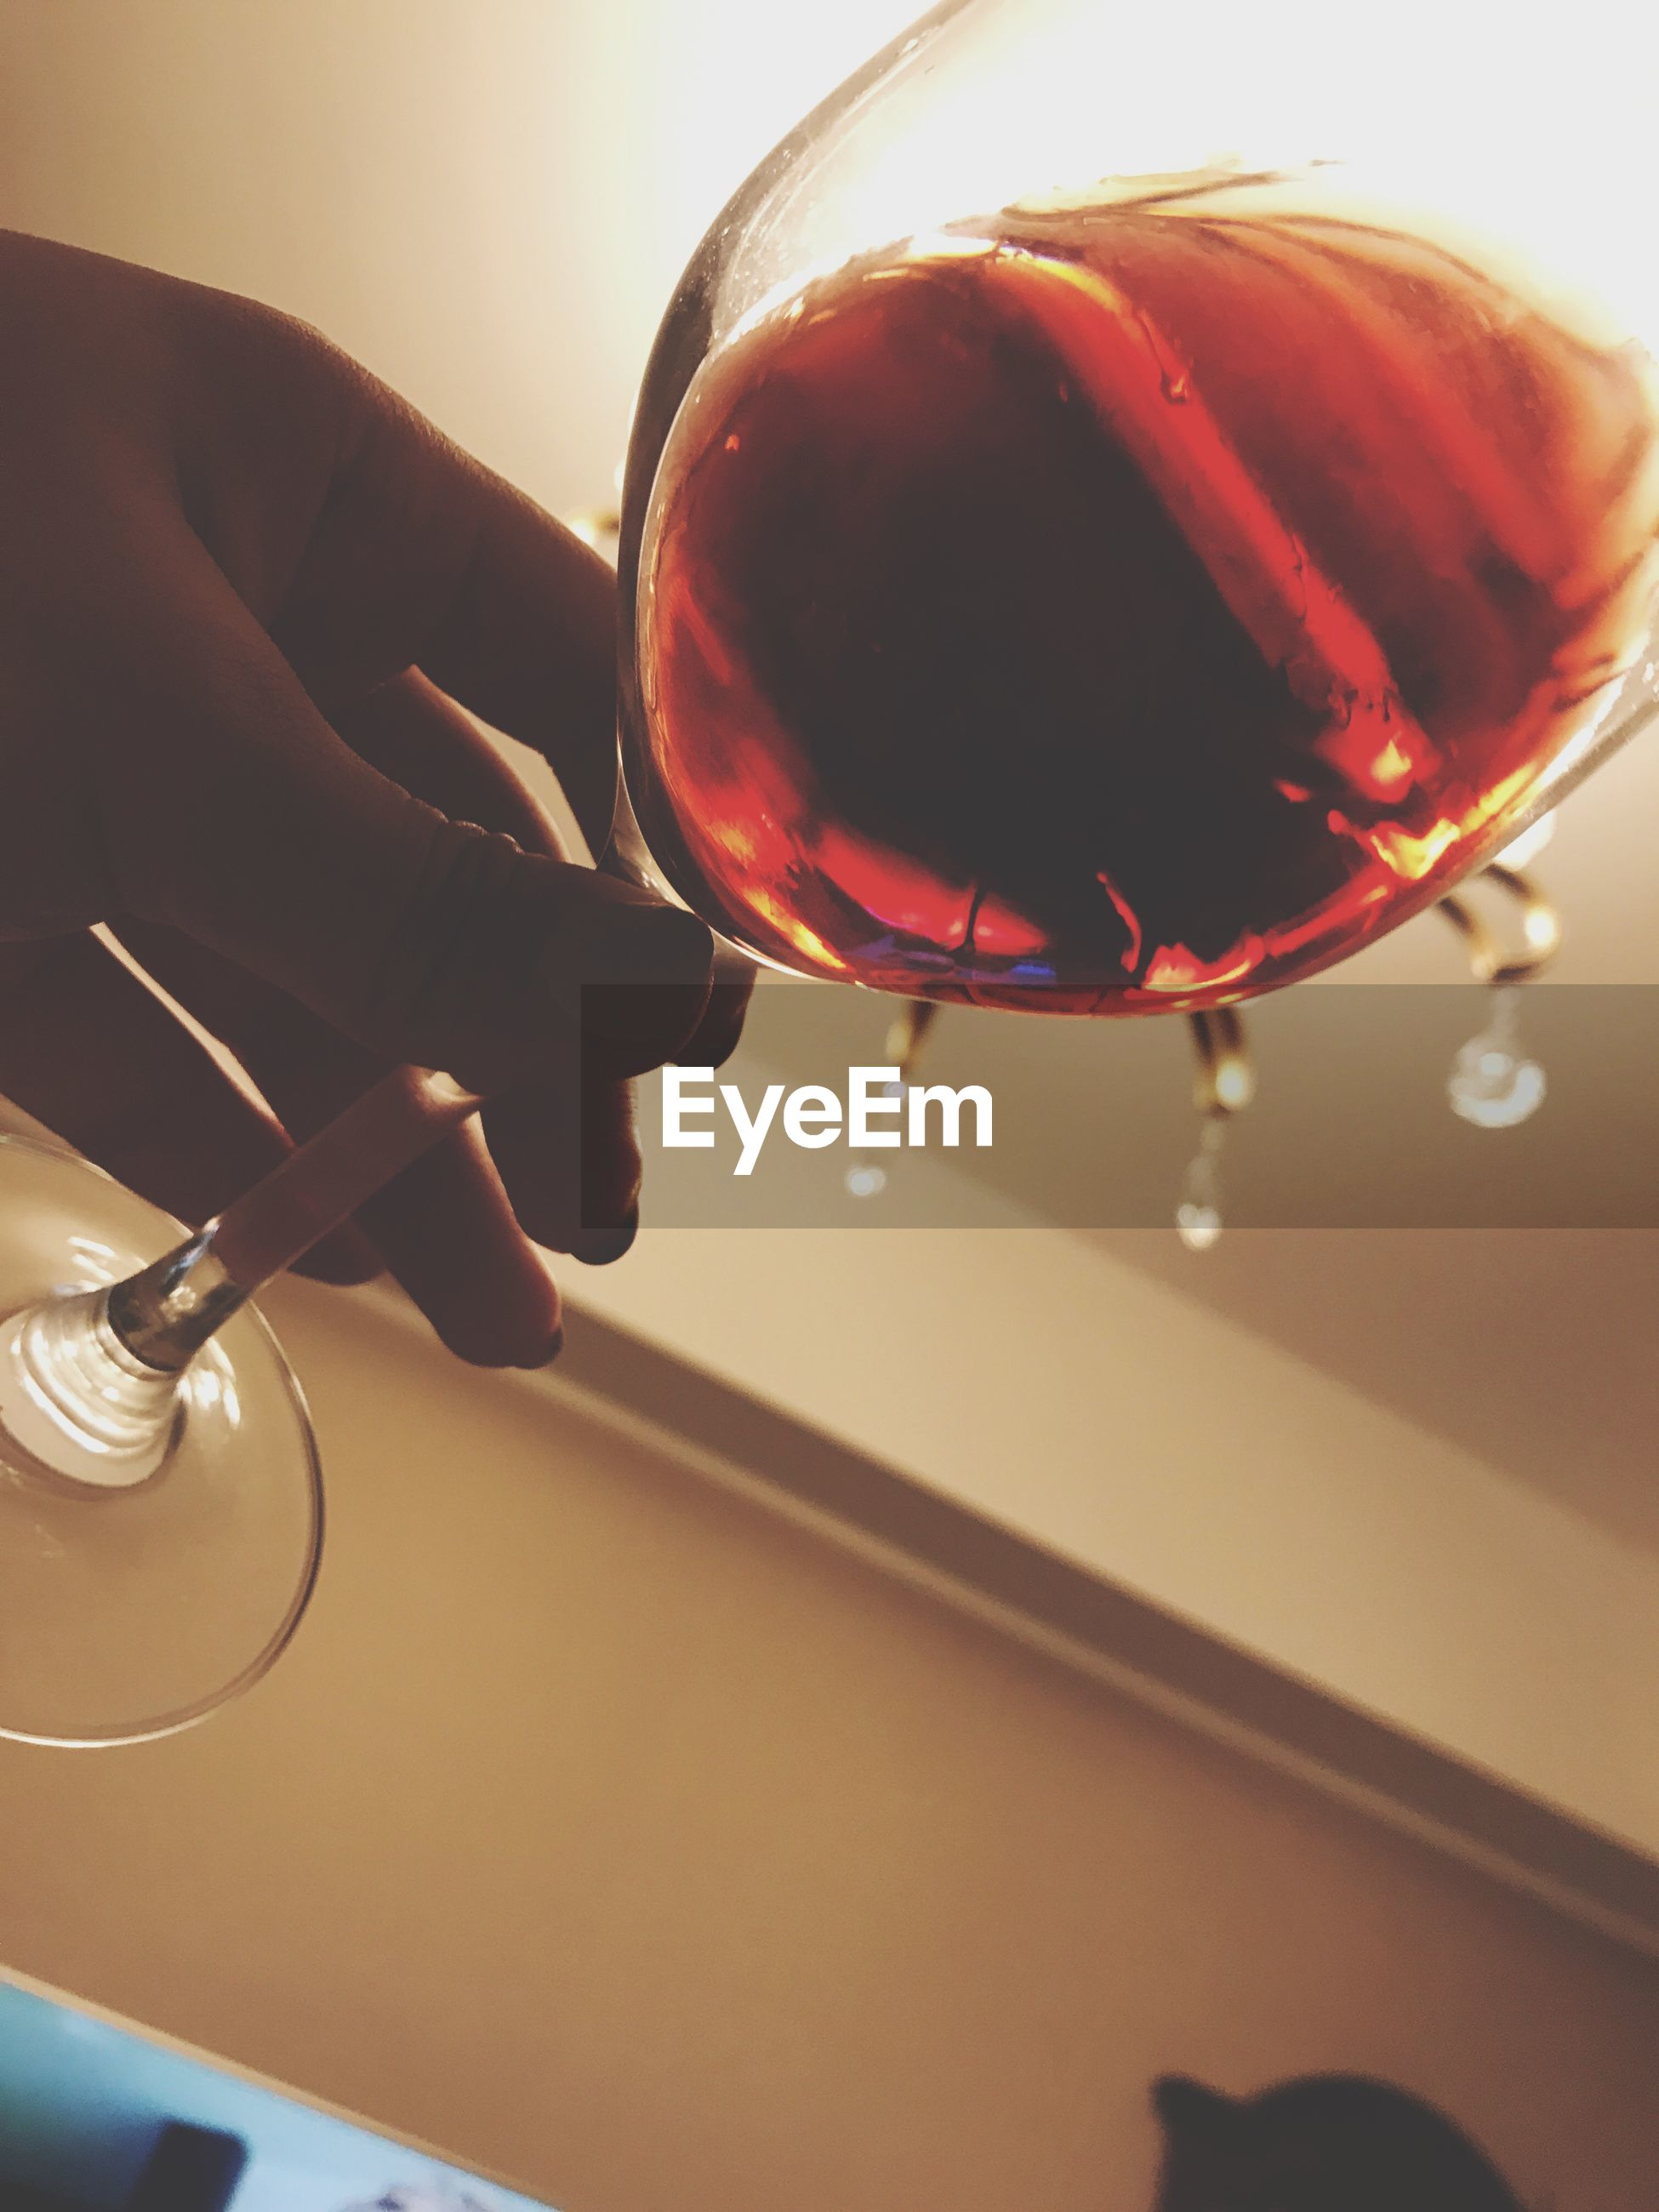 refreshment, human hand, indoors, one person, real people, pouring, food and drink, freshness, close-up, holding, wineglass, human body part, water, food, dripping, day, people